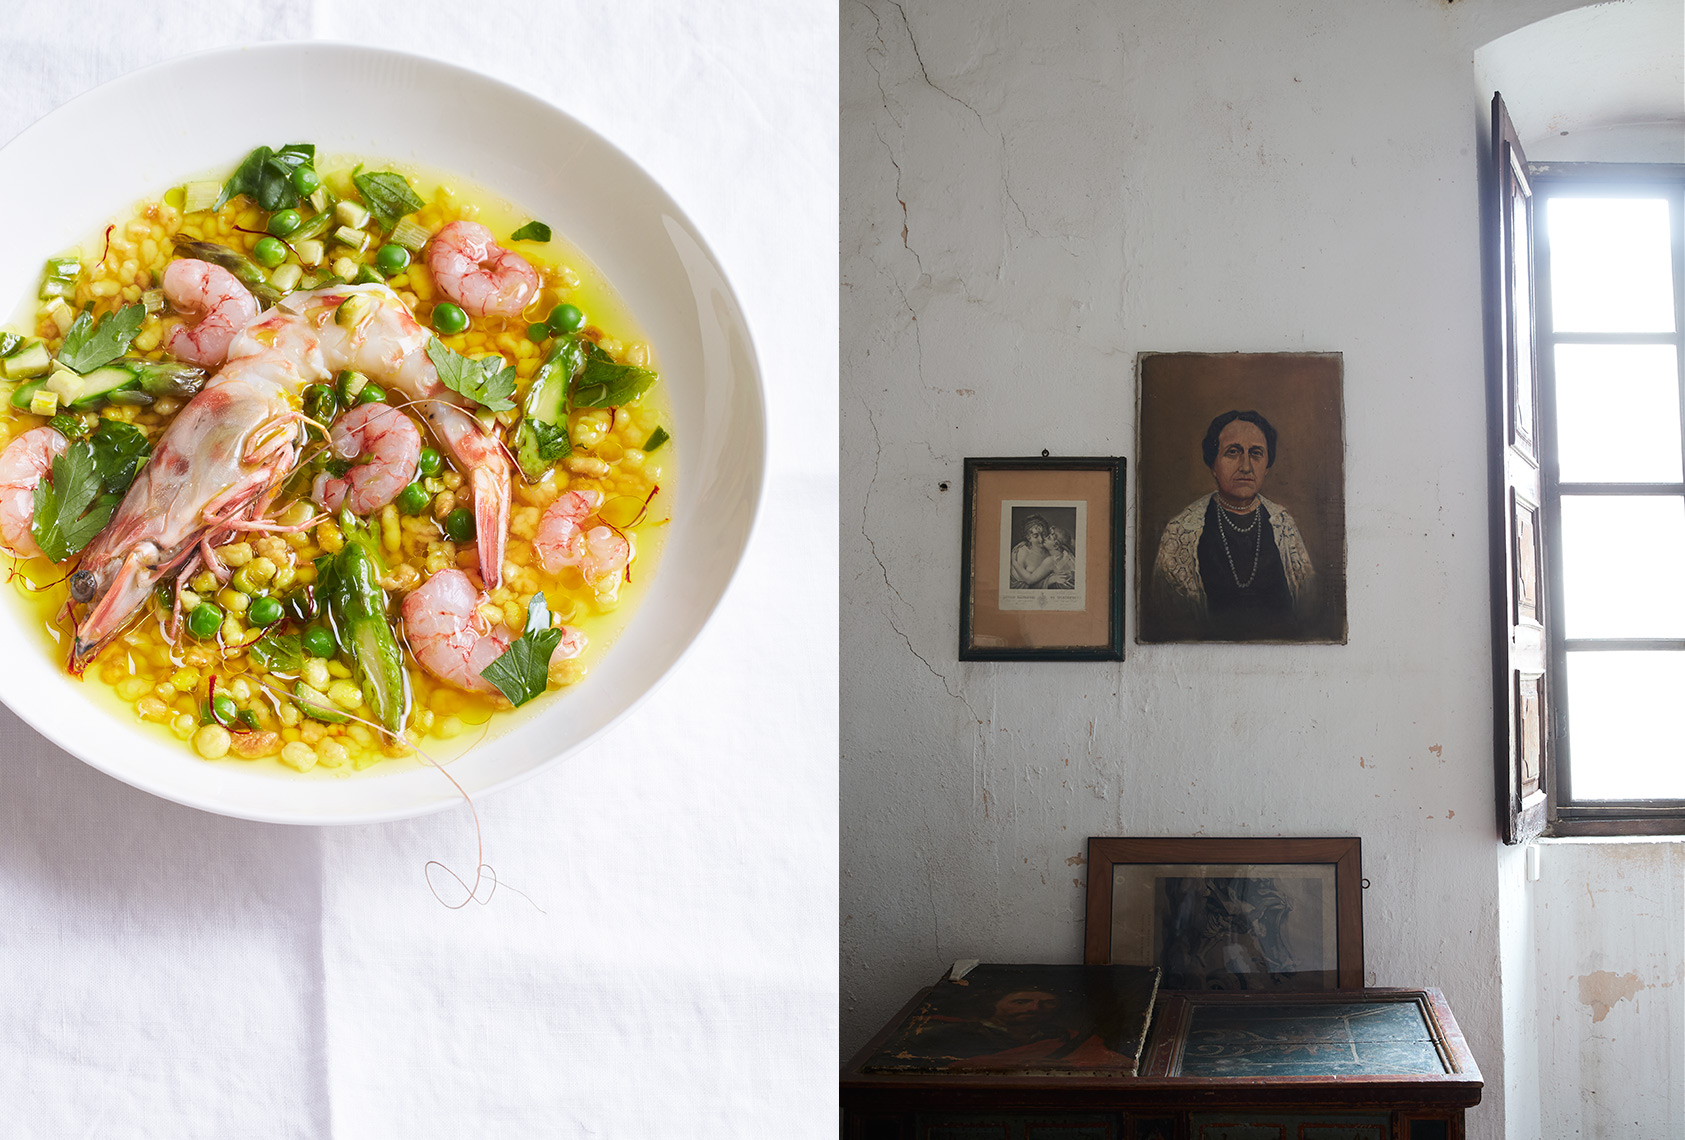 Autentico: Shrimp, Fregola Sarda, and The Matriarch